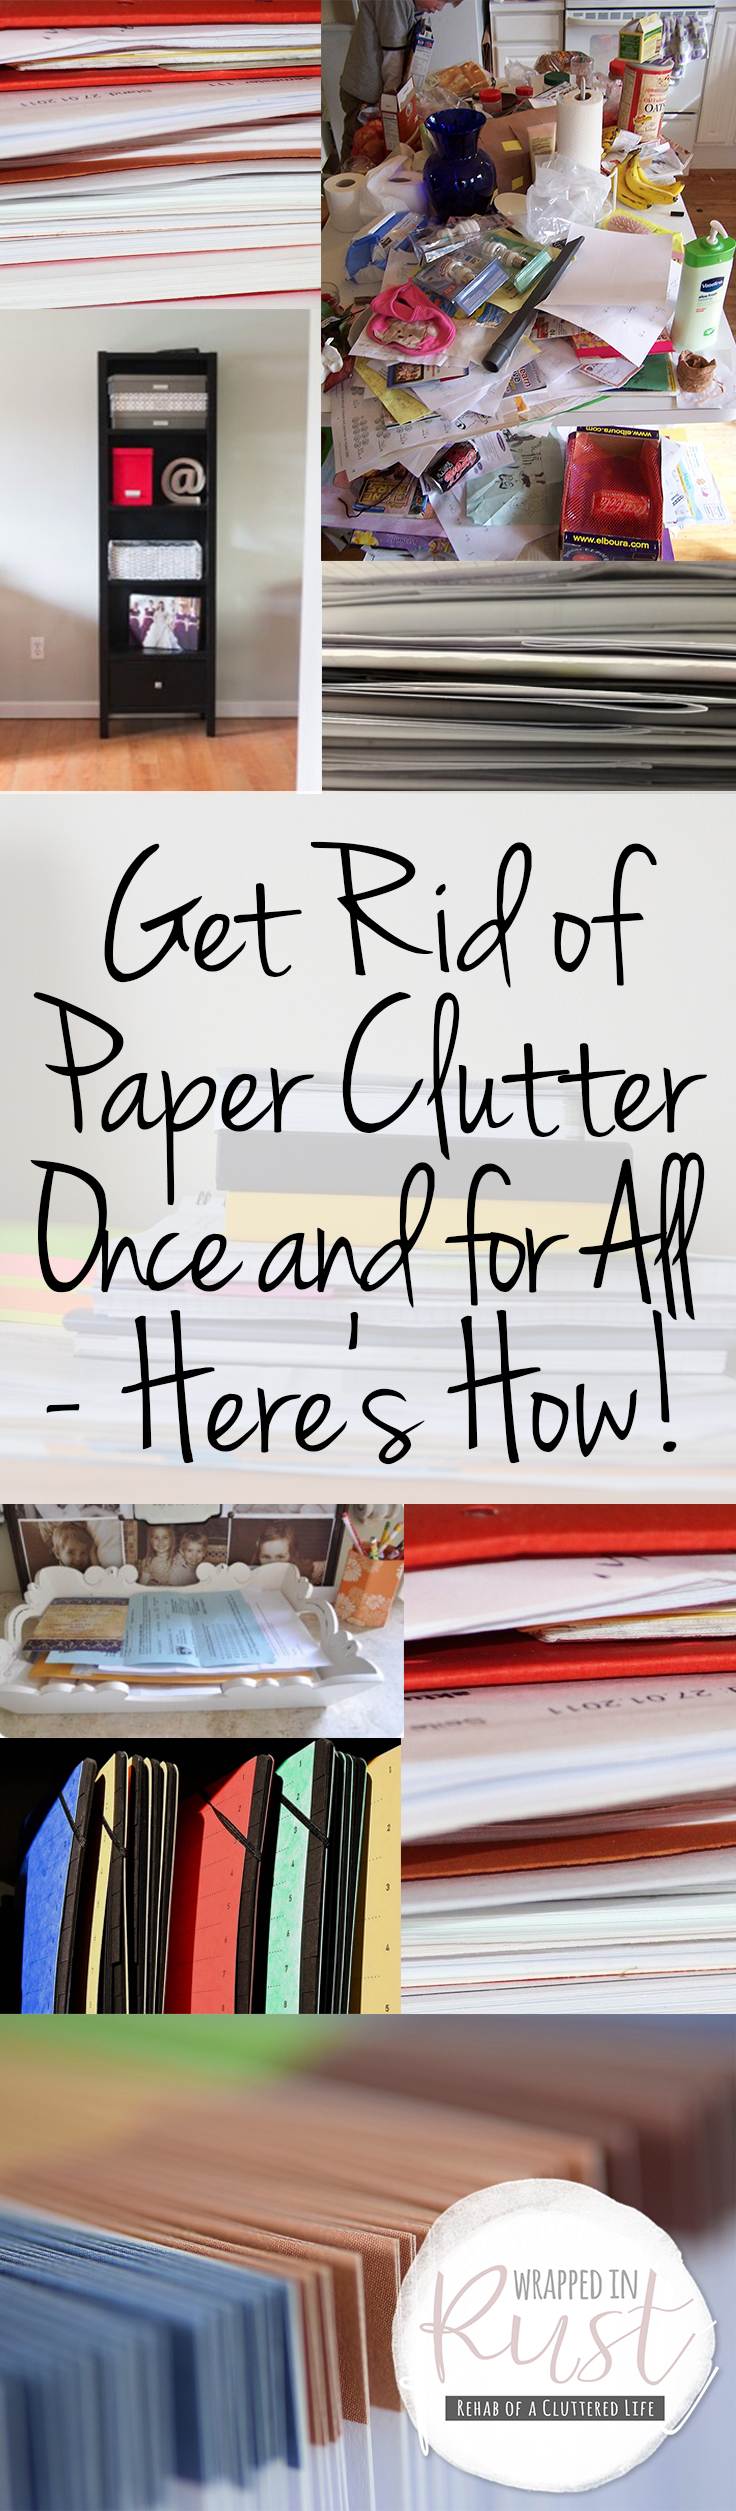 Get Rid Of Paper Clutter Once And For All Here 39 S How